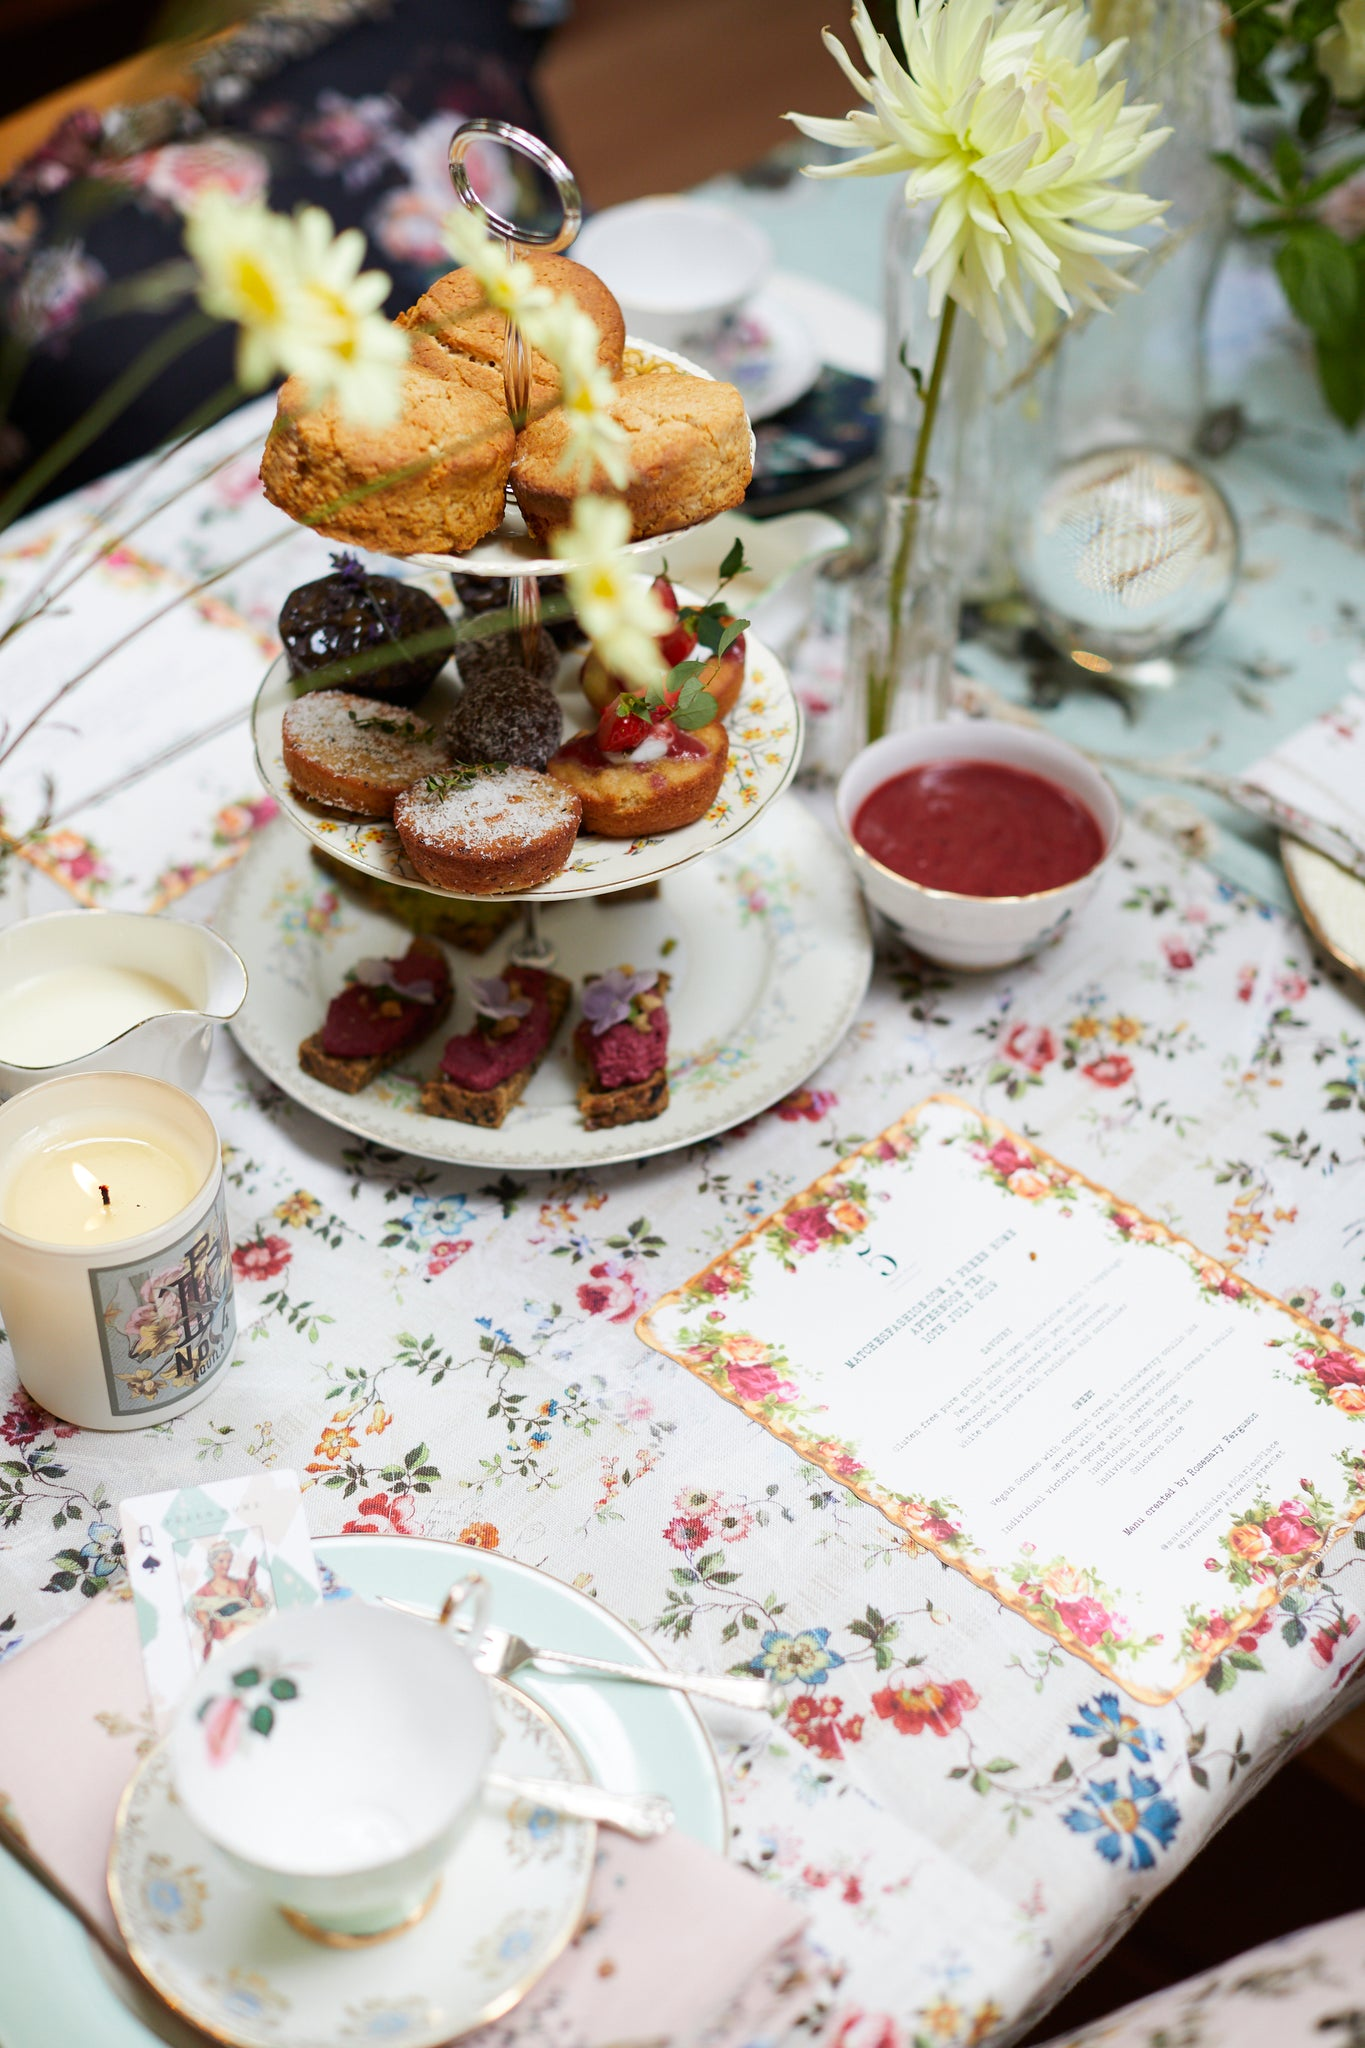 PREEN AND MATCHES FASHION AFTERNOON TEA